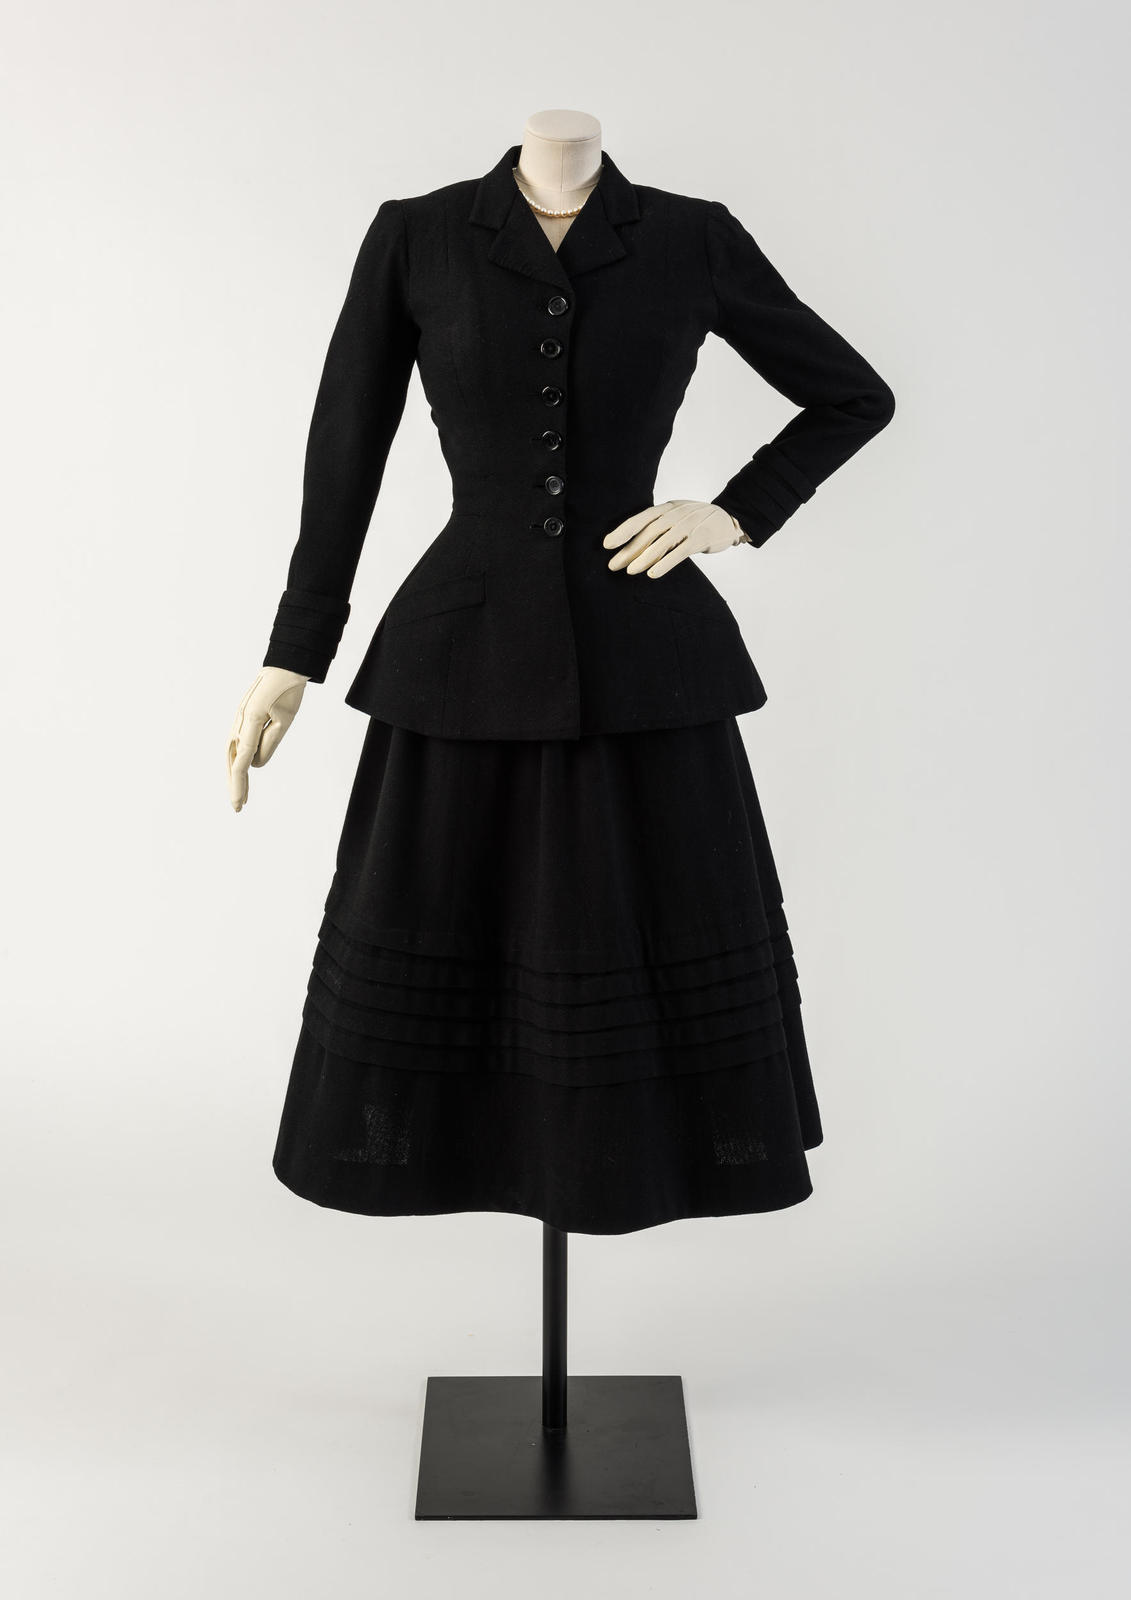 Black wool dress uk